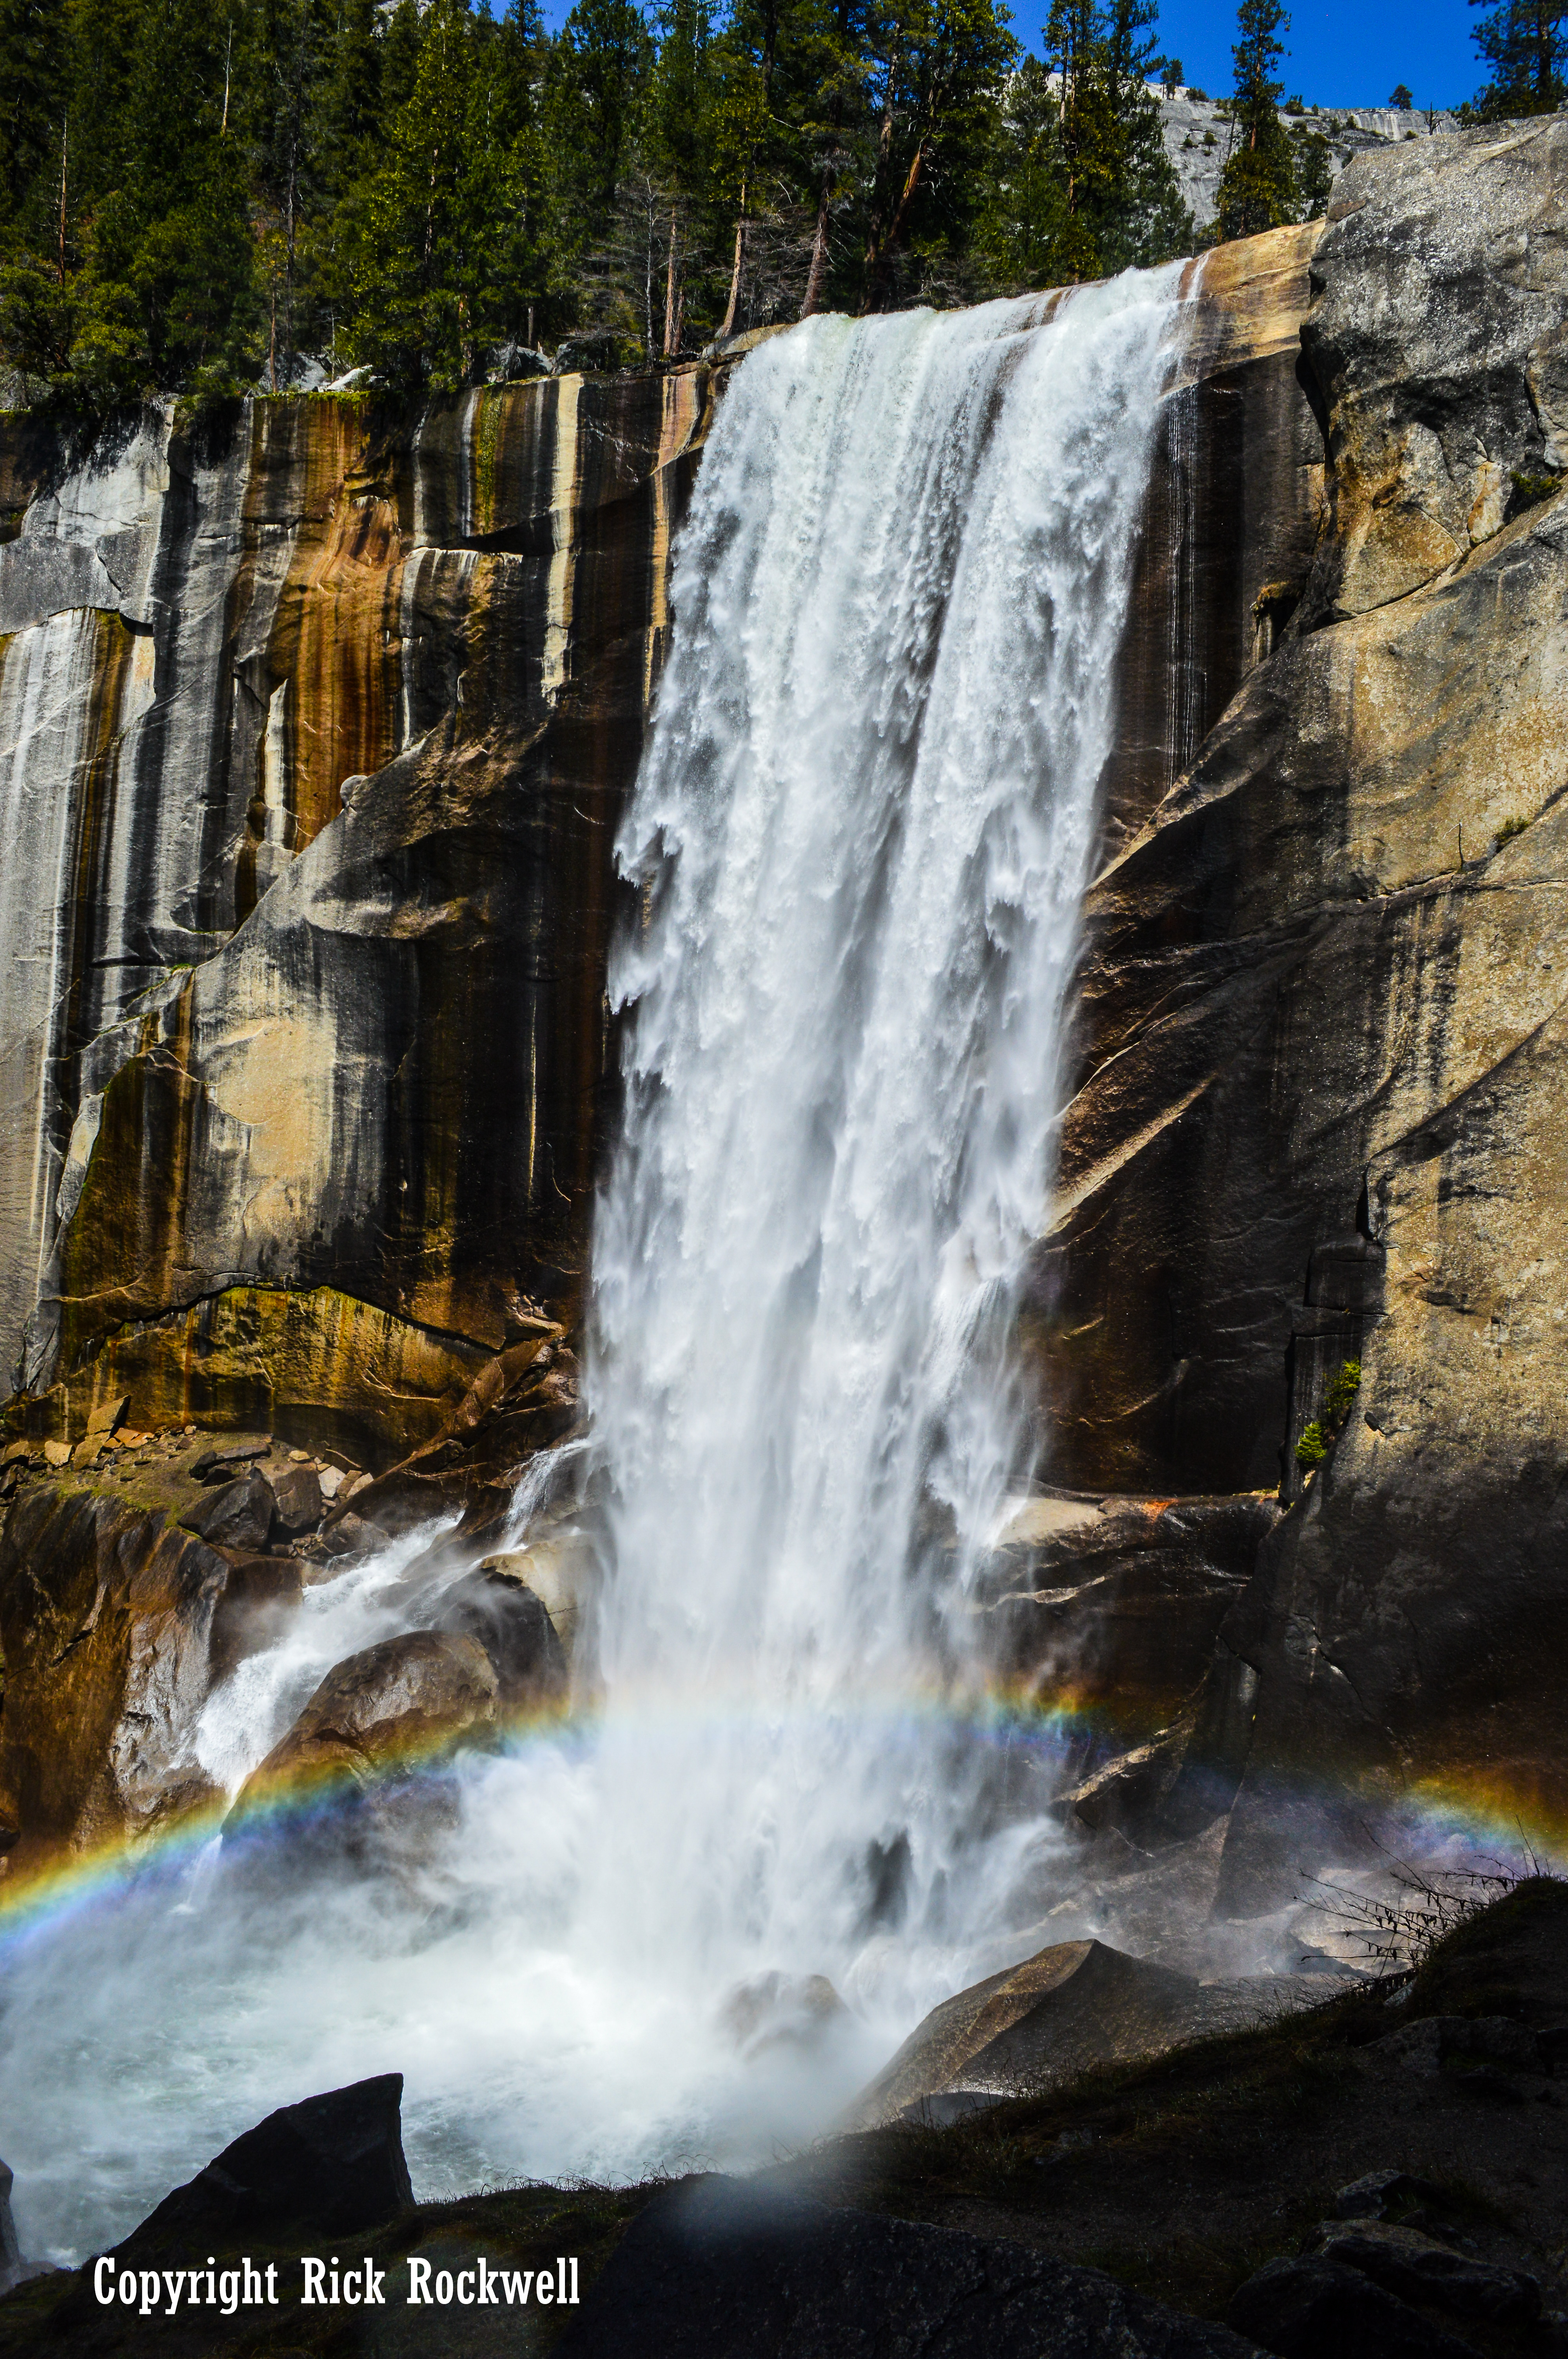 Photo of Vernal Fall: adding mist and breathtaking views to Yosemite Valley